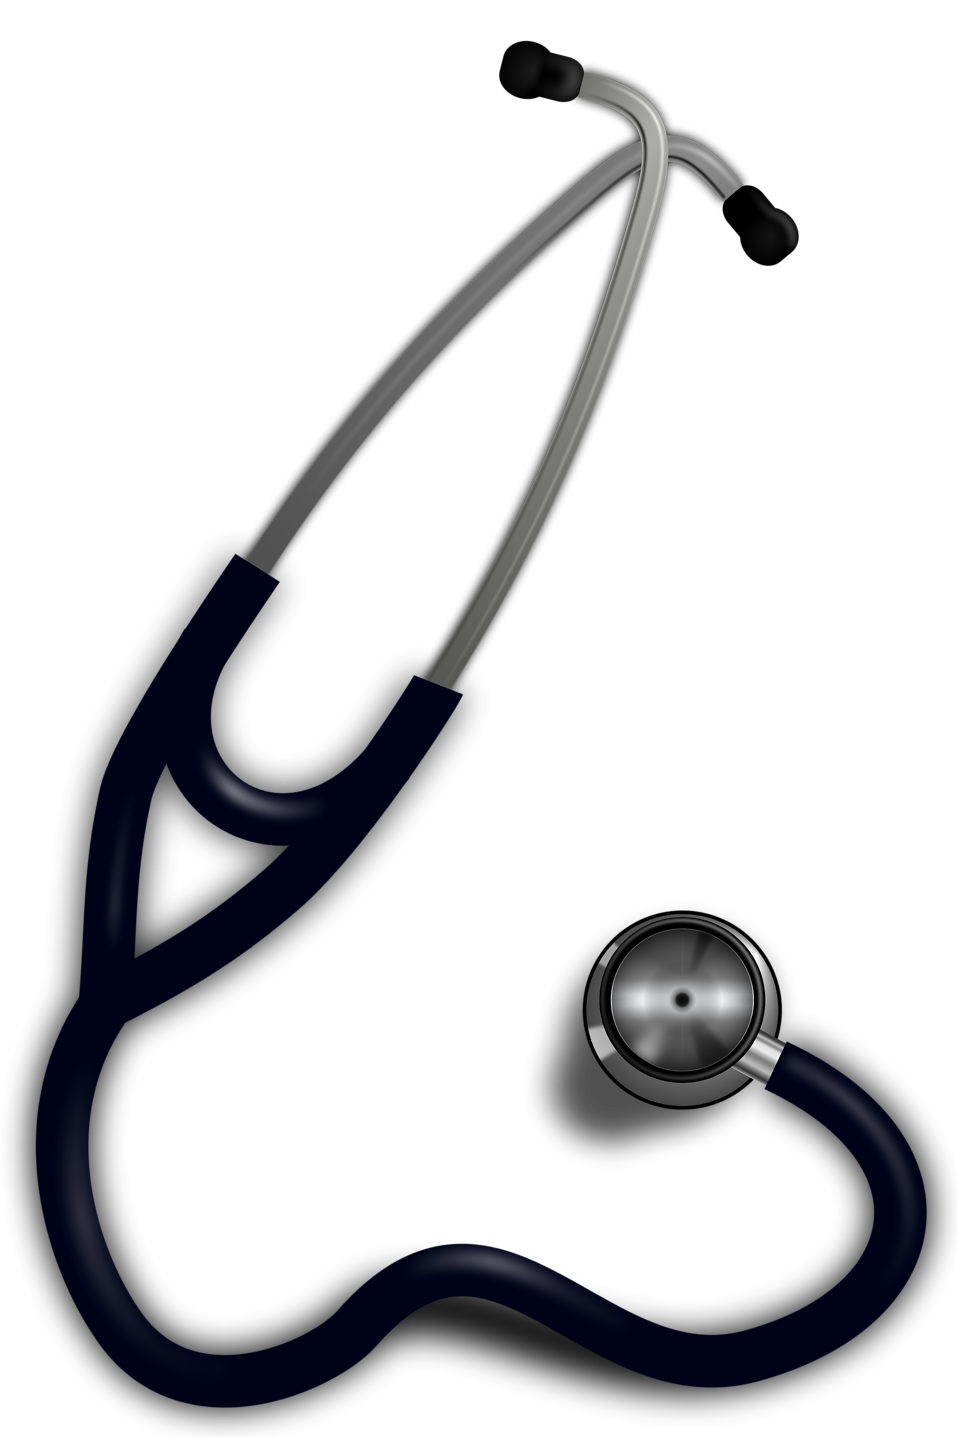 Transparent stethoscope medical equipment. Healthcare clipart library